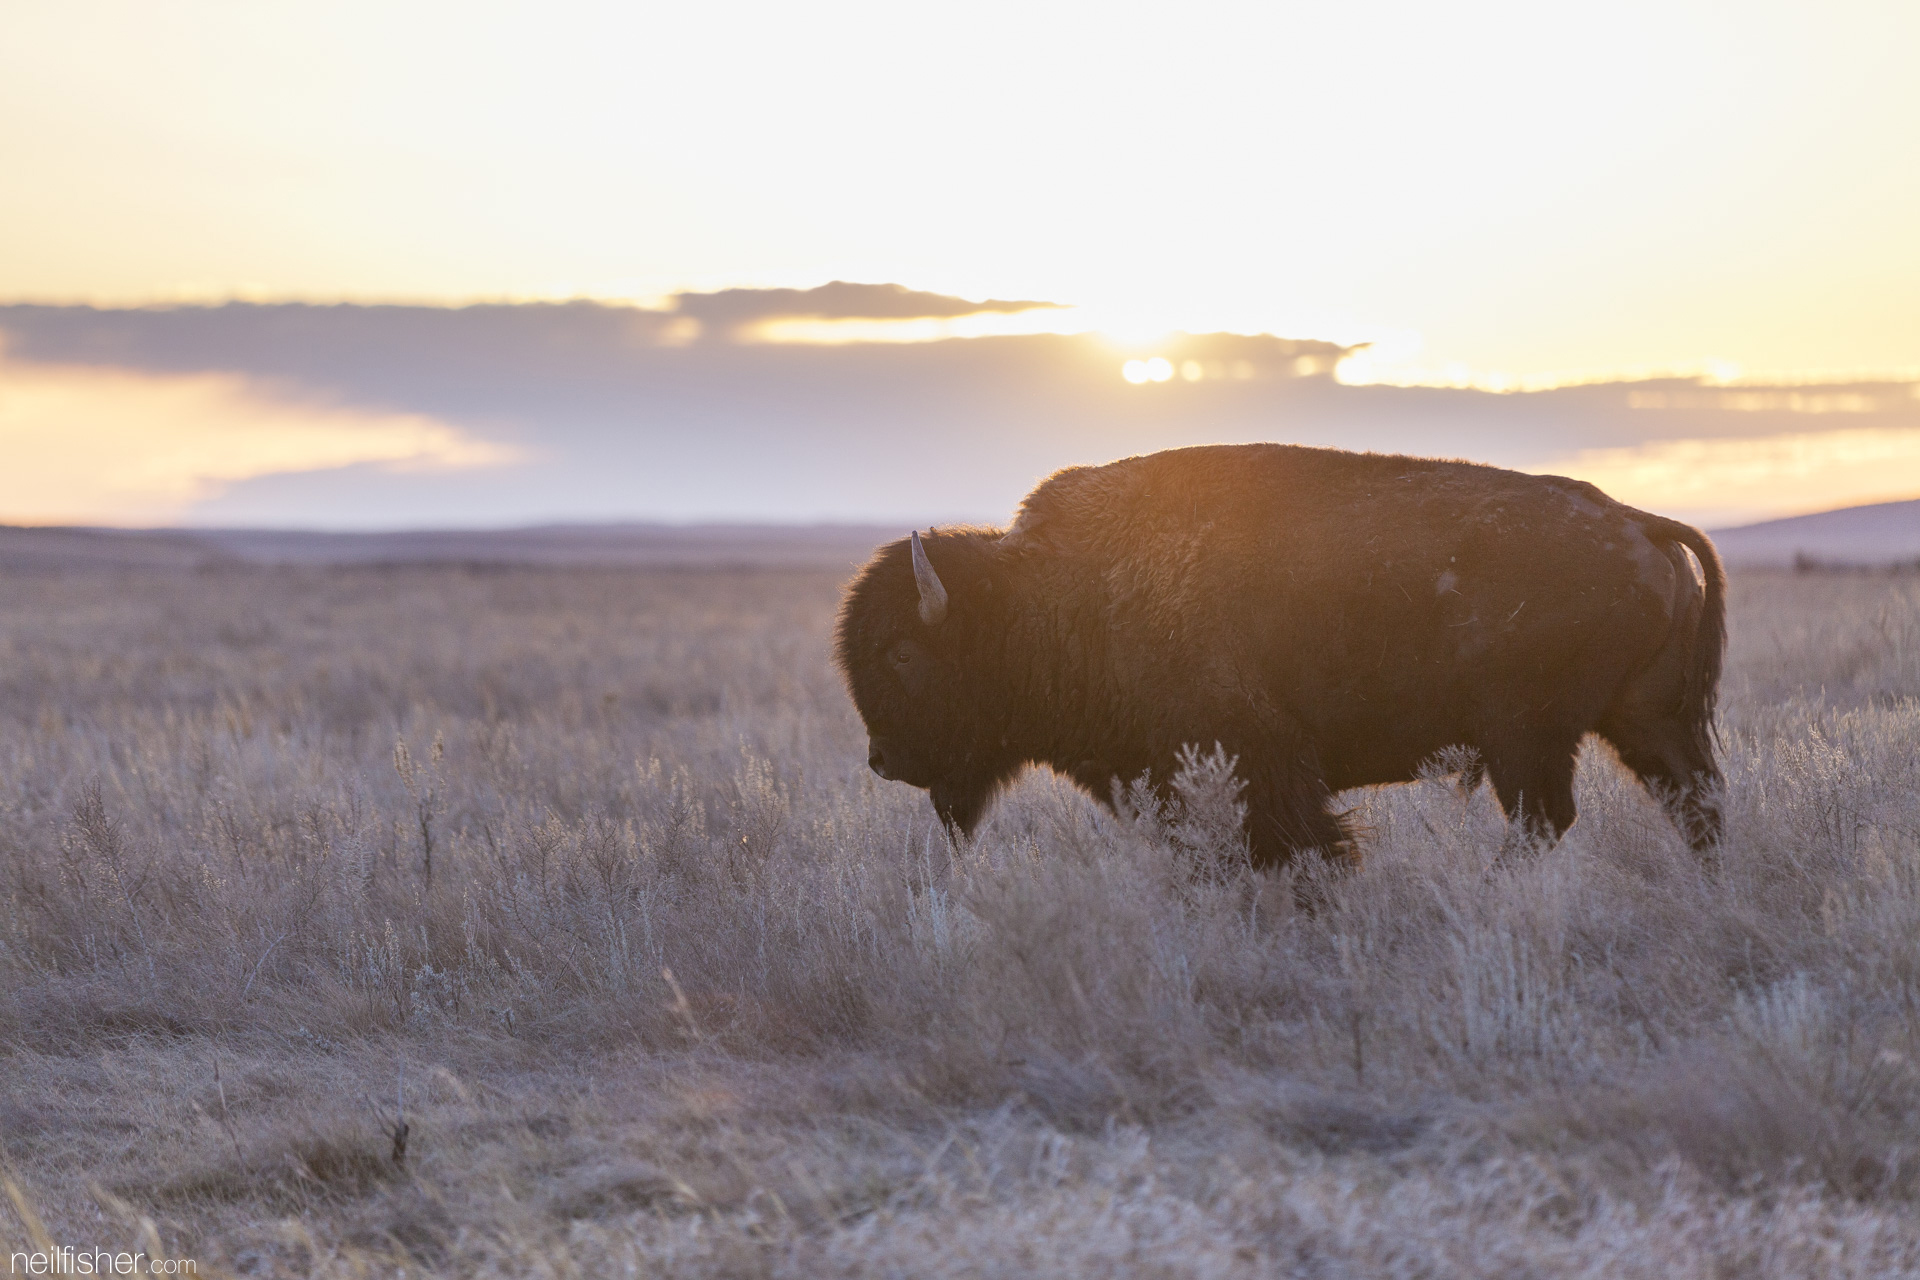 20160409 - Sunset Bison - NeilFisher.jpg